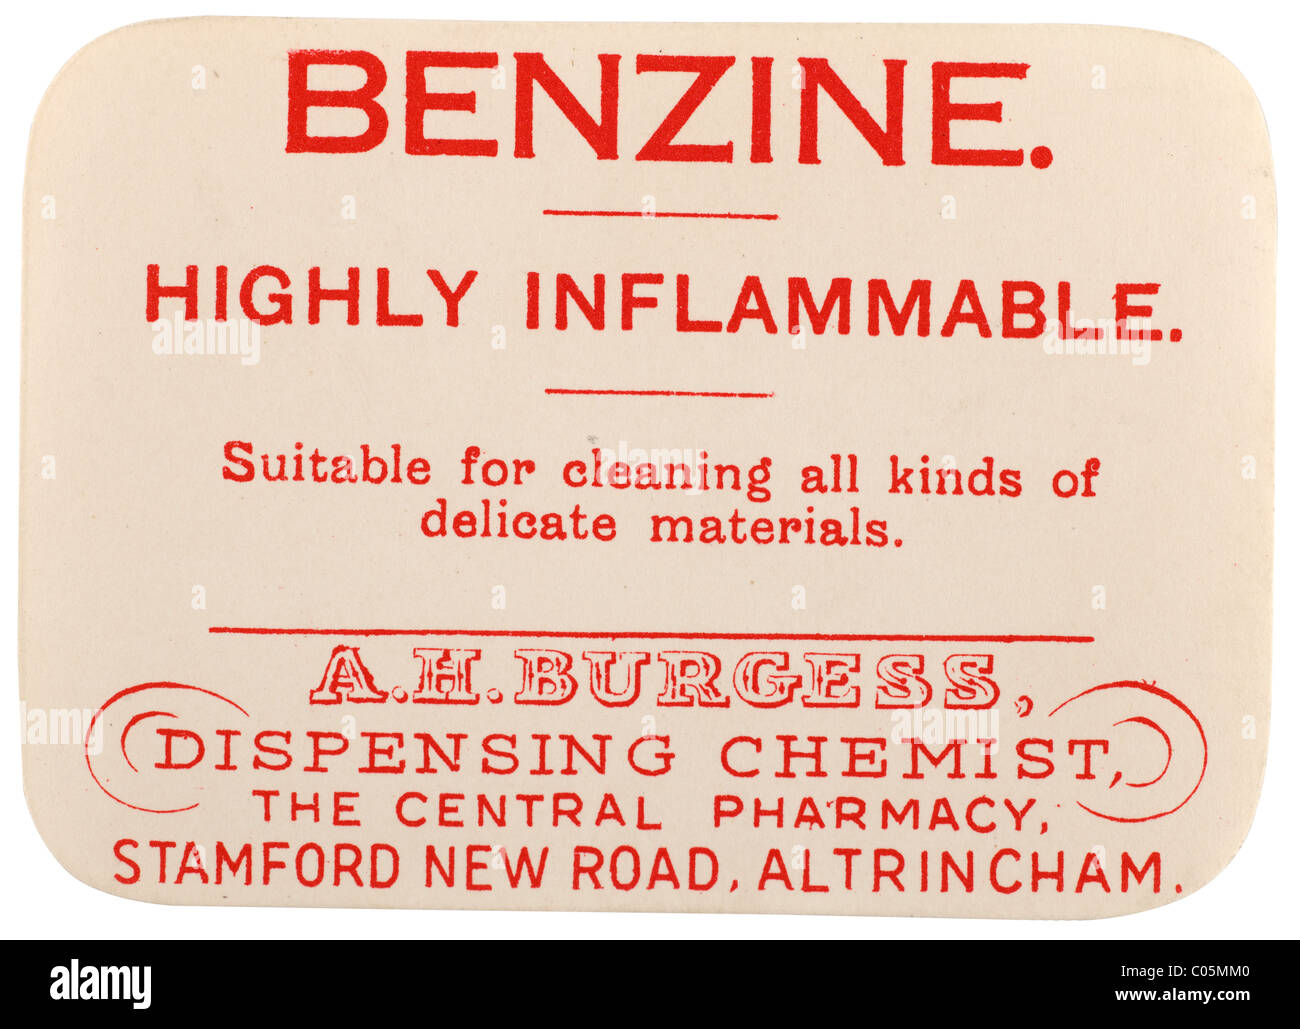 Old vintage chemists label from A H Burgess dispensing chemist in Altrincham for Benzine highly inflammable. EDITORIAL - Stock Image